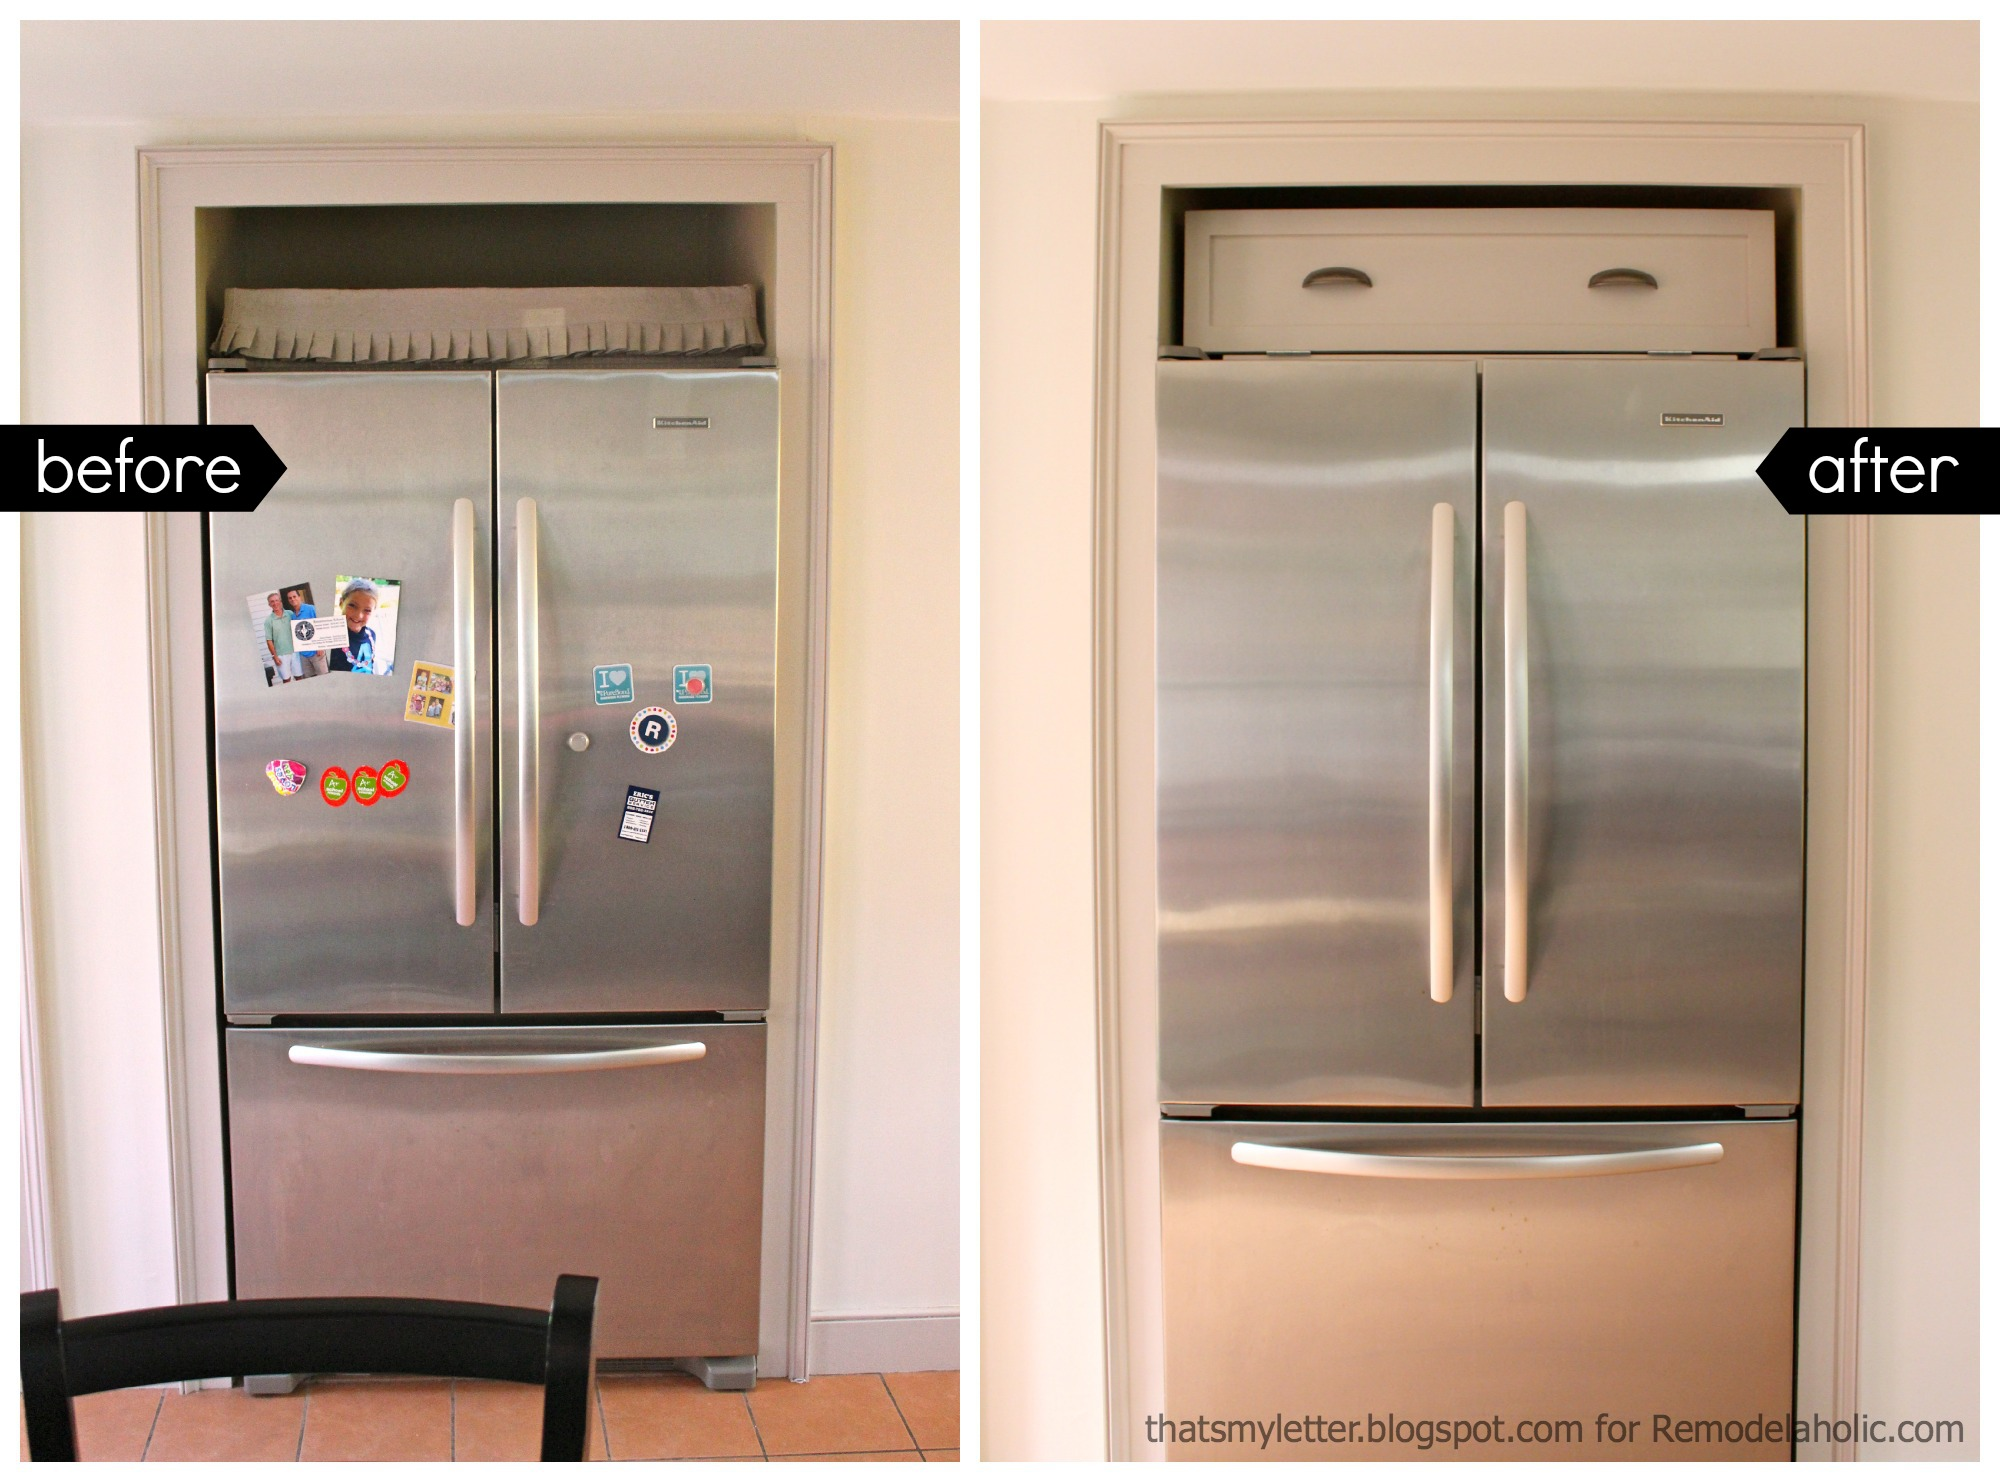 Exceptionnel Over Fridge Cabinet Before After